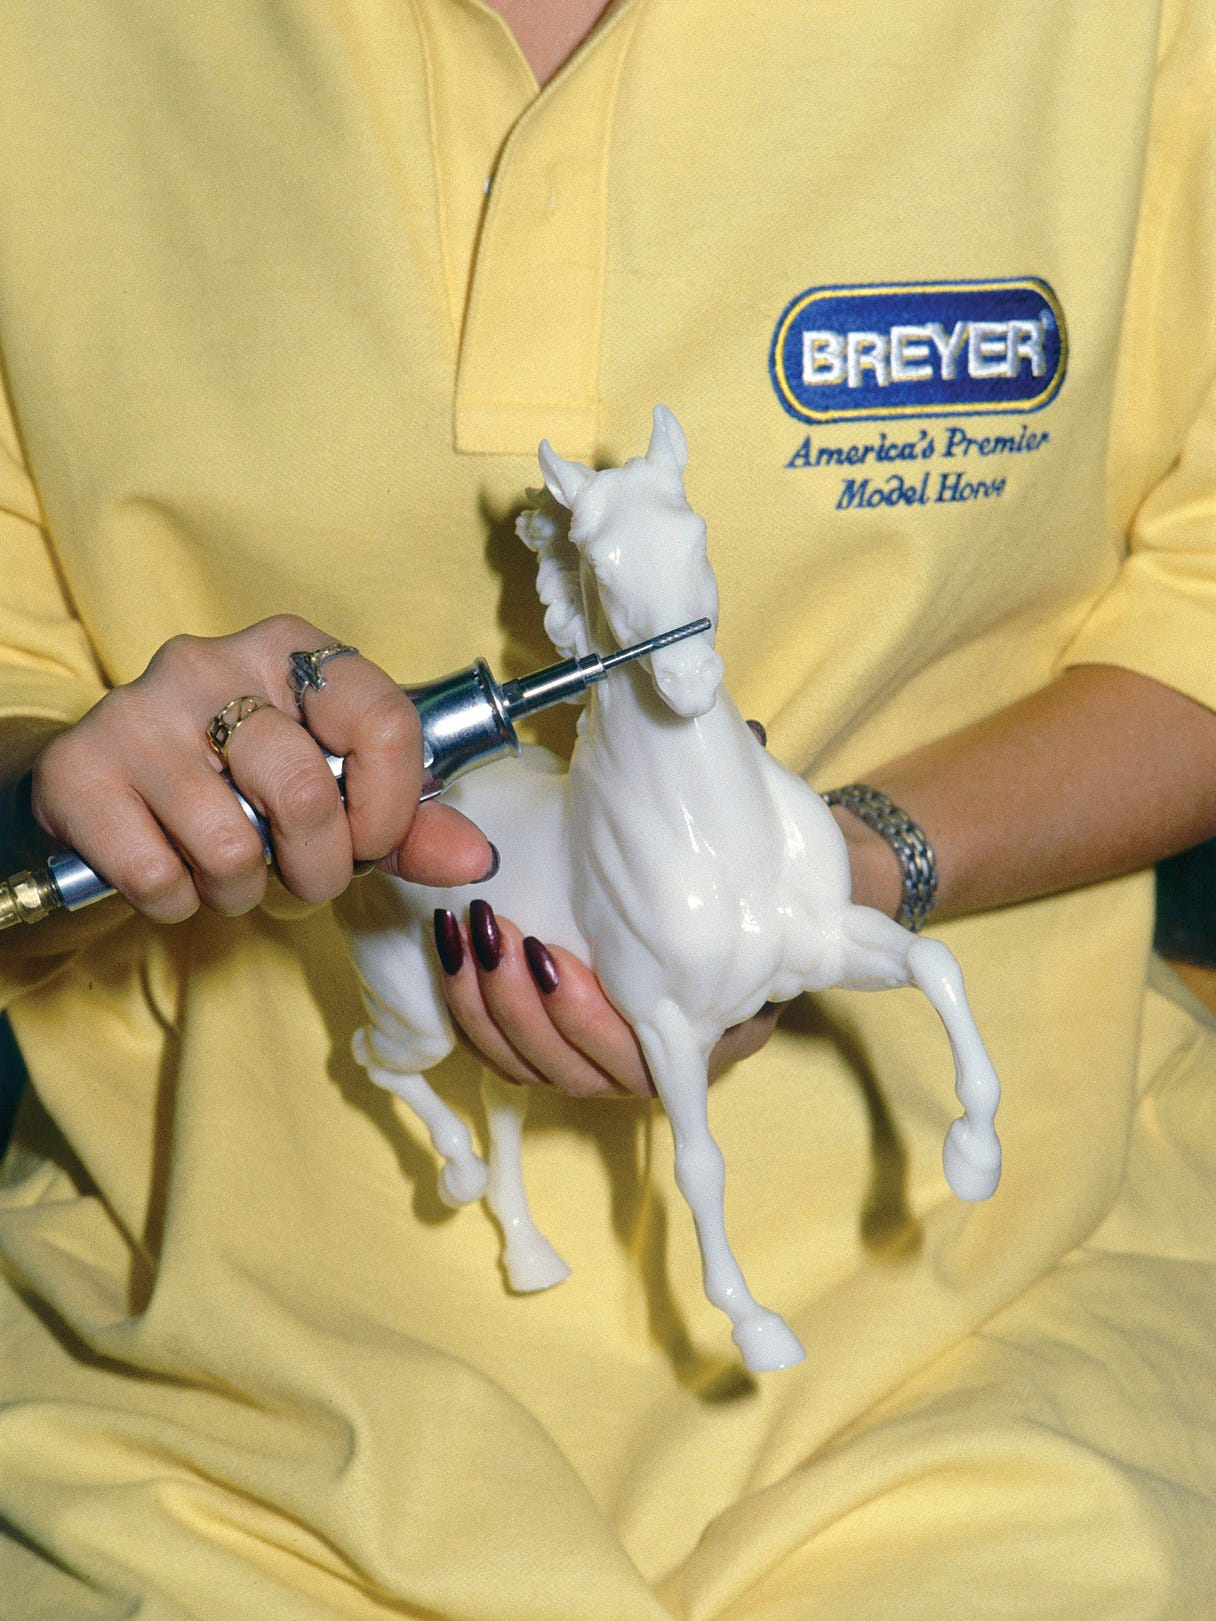 American Pharoah Gets His Own Breyer Collectible At Breeders Cup 2015